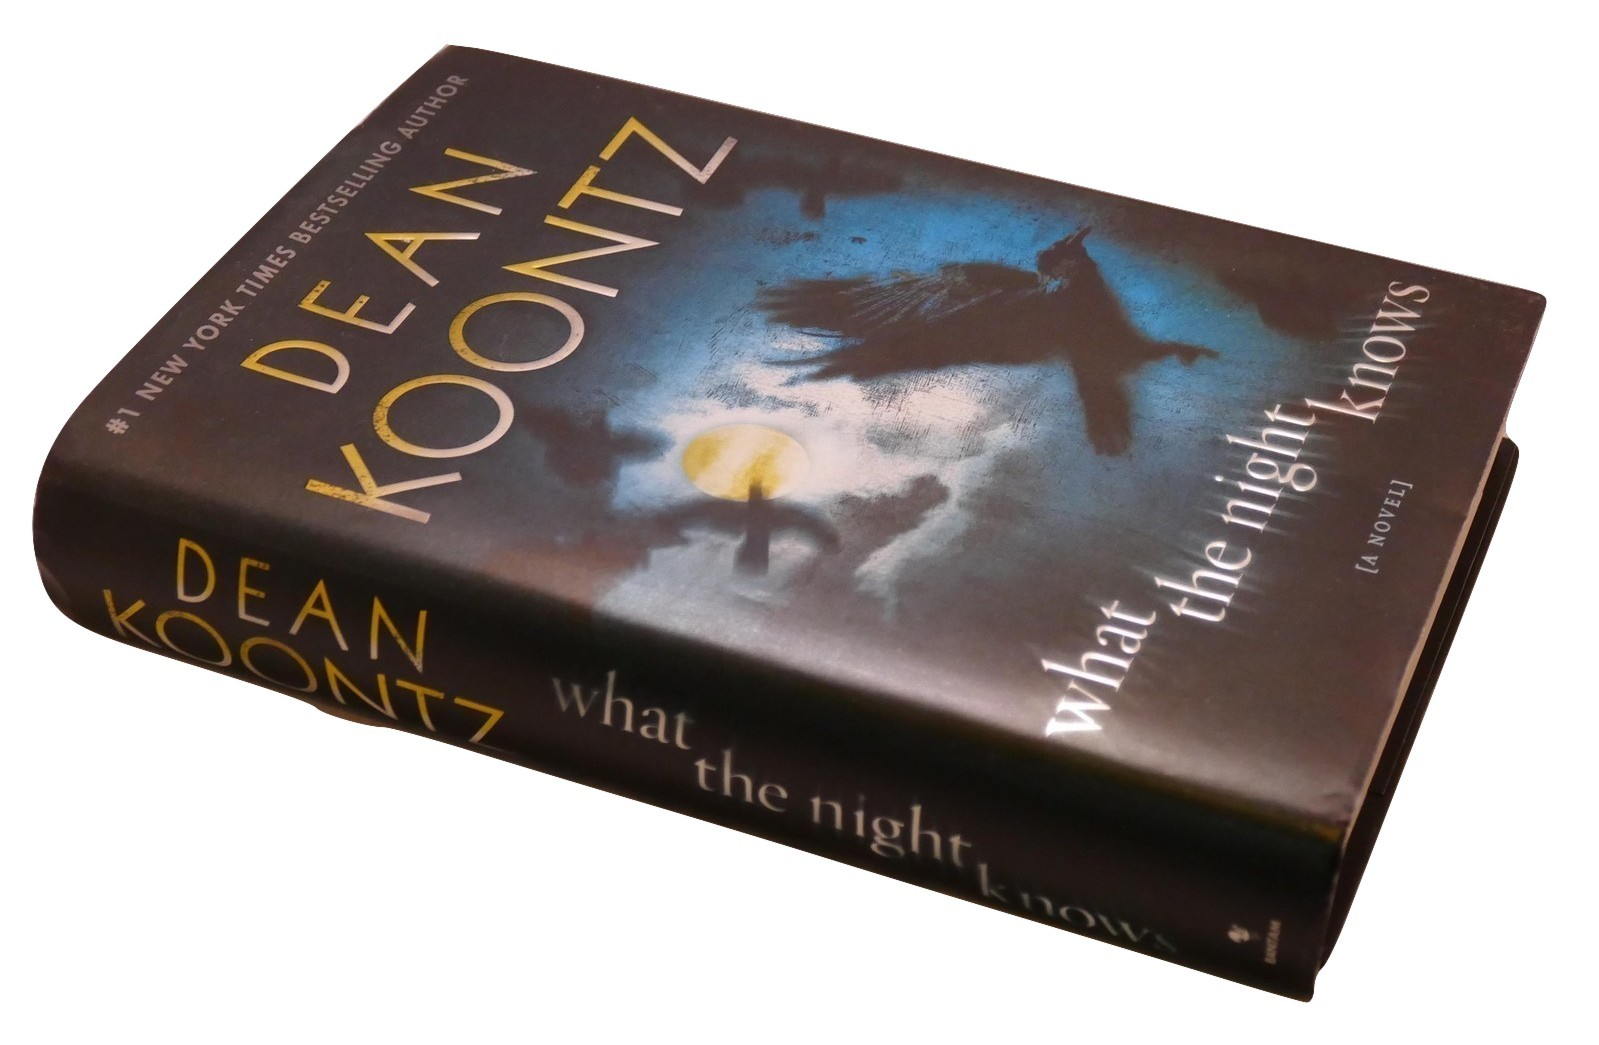 Primary image for What the Night Knows by Dean Koontz Hardcover Book Fiction